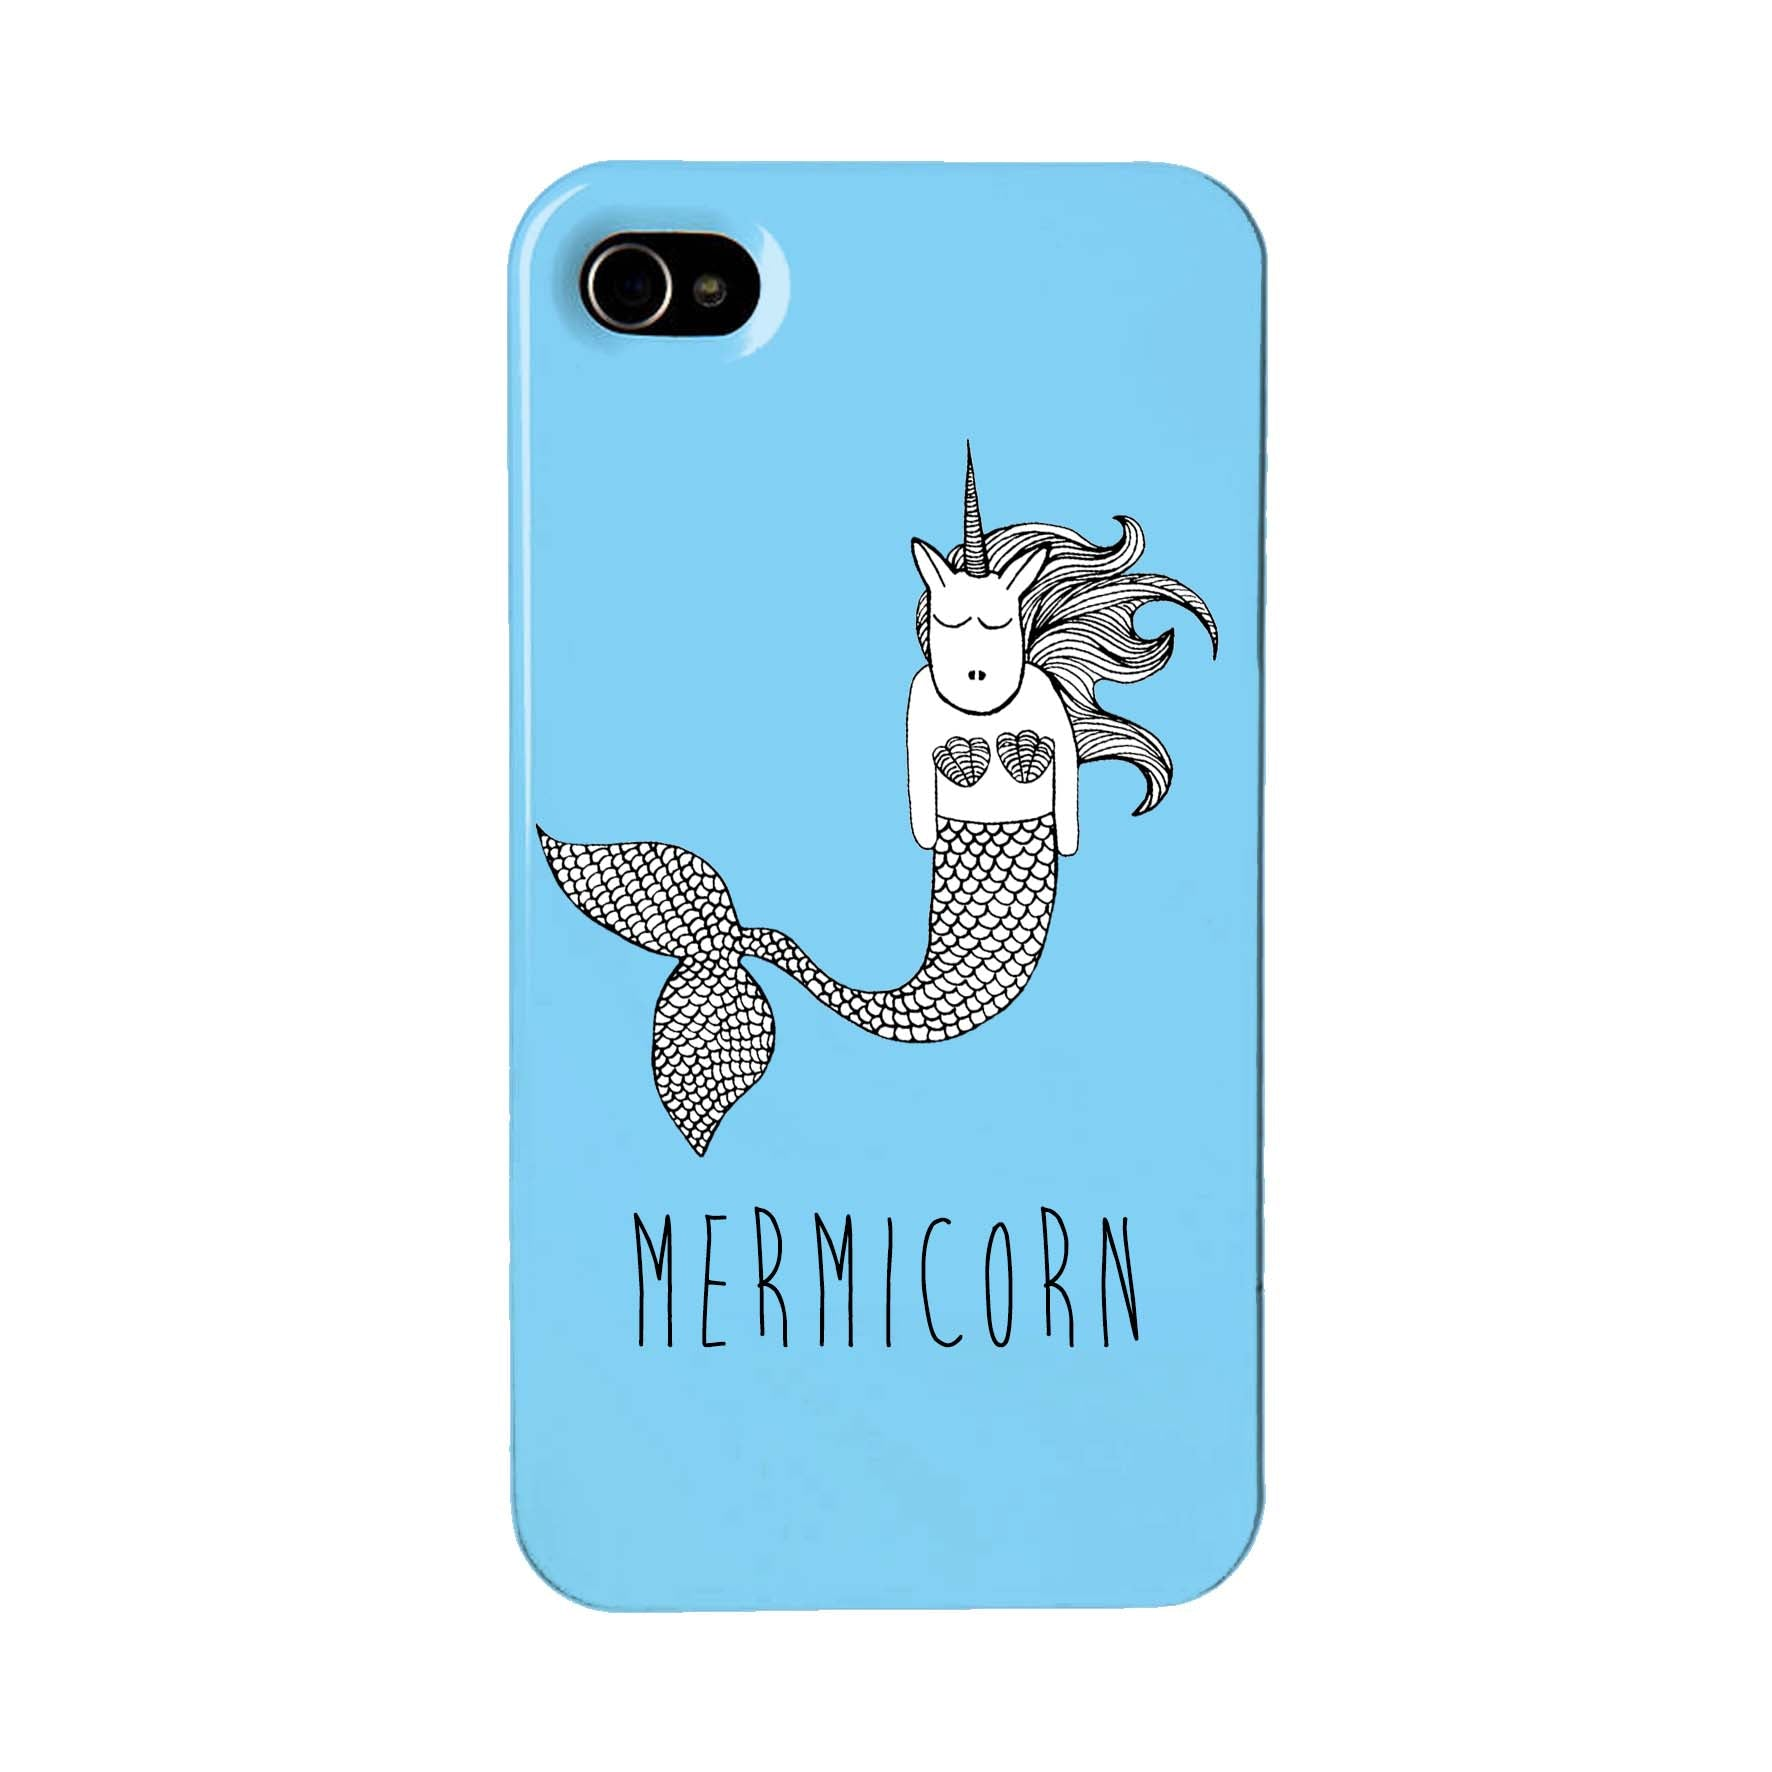 Blue phone case with an illustration of a unicorn mermaid